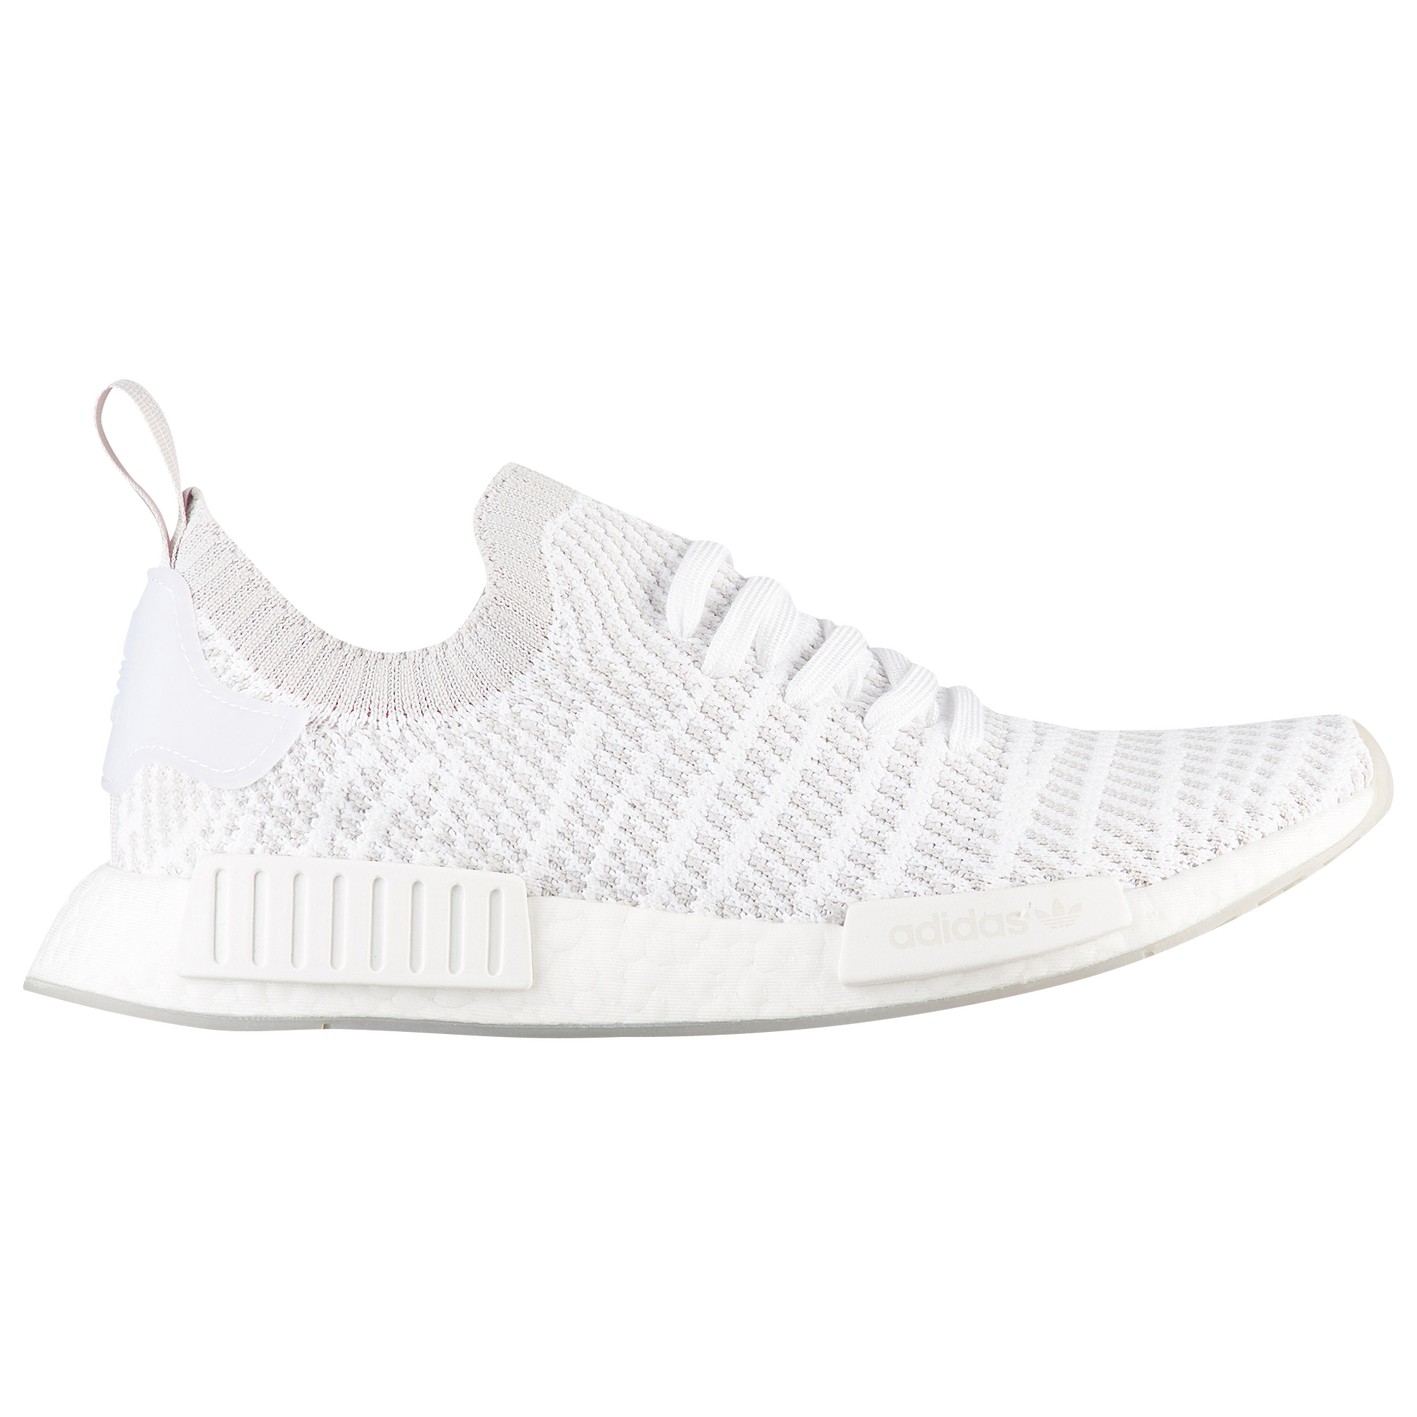 8e68bef49 adidas Originals NMD R1 STLT Primeknit - Men s - Casual - Shoes ...